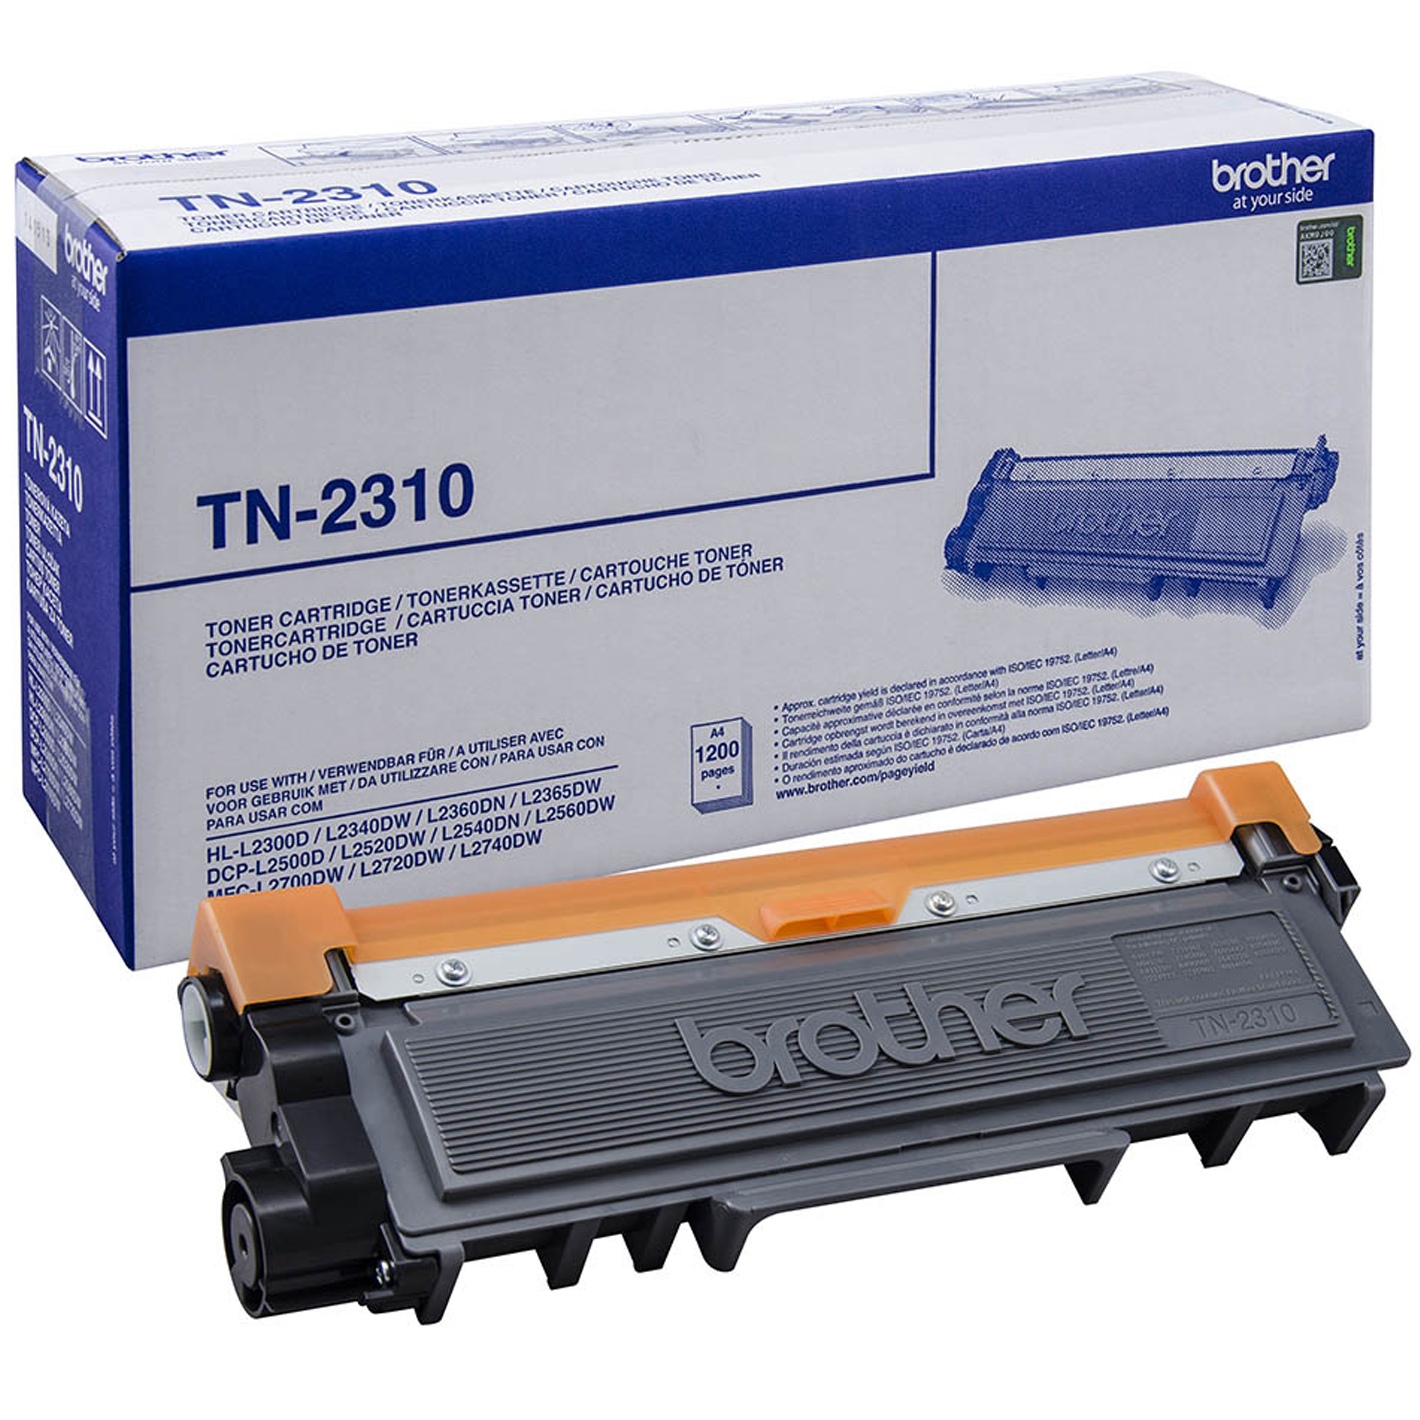 Brotn2310      Brother Tn2310 Black Toner     Hl-l2300d                                                    - UF01